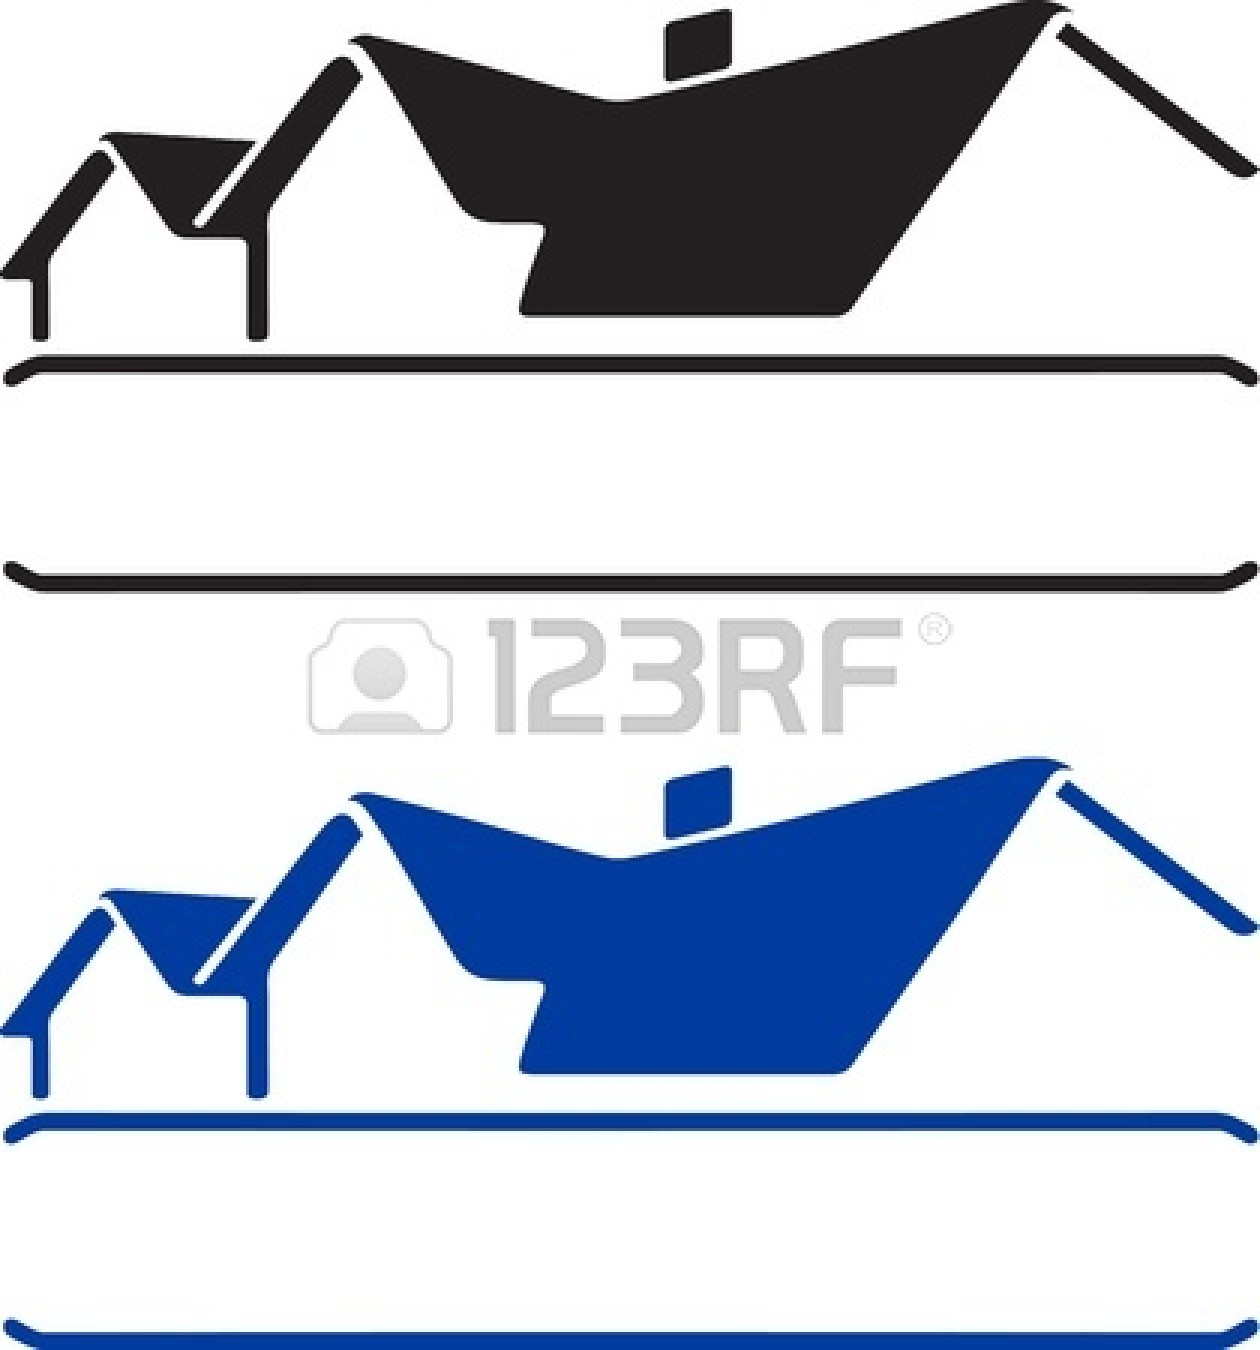 Rooftop clipart Roof Clipart Images Free Outline